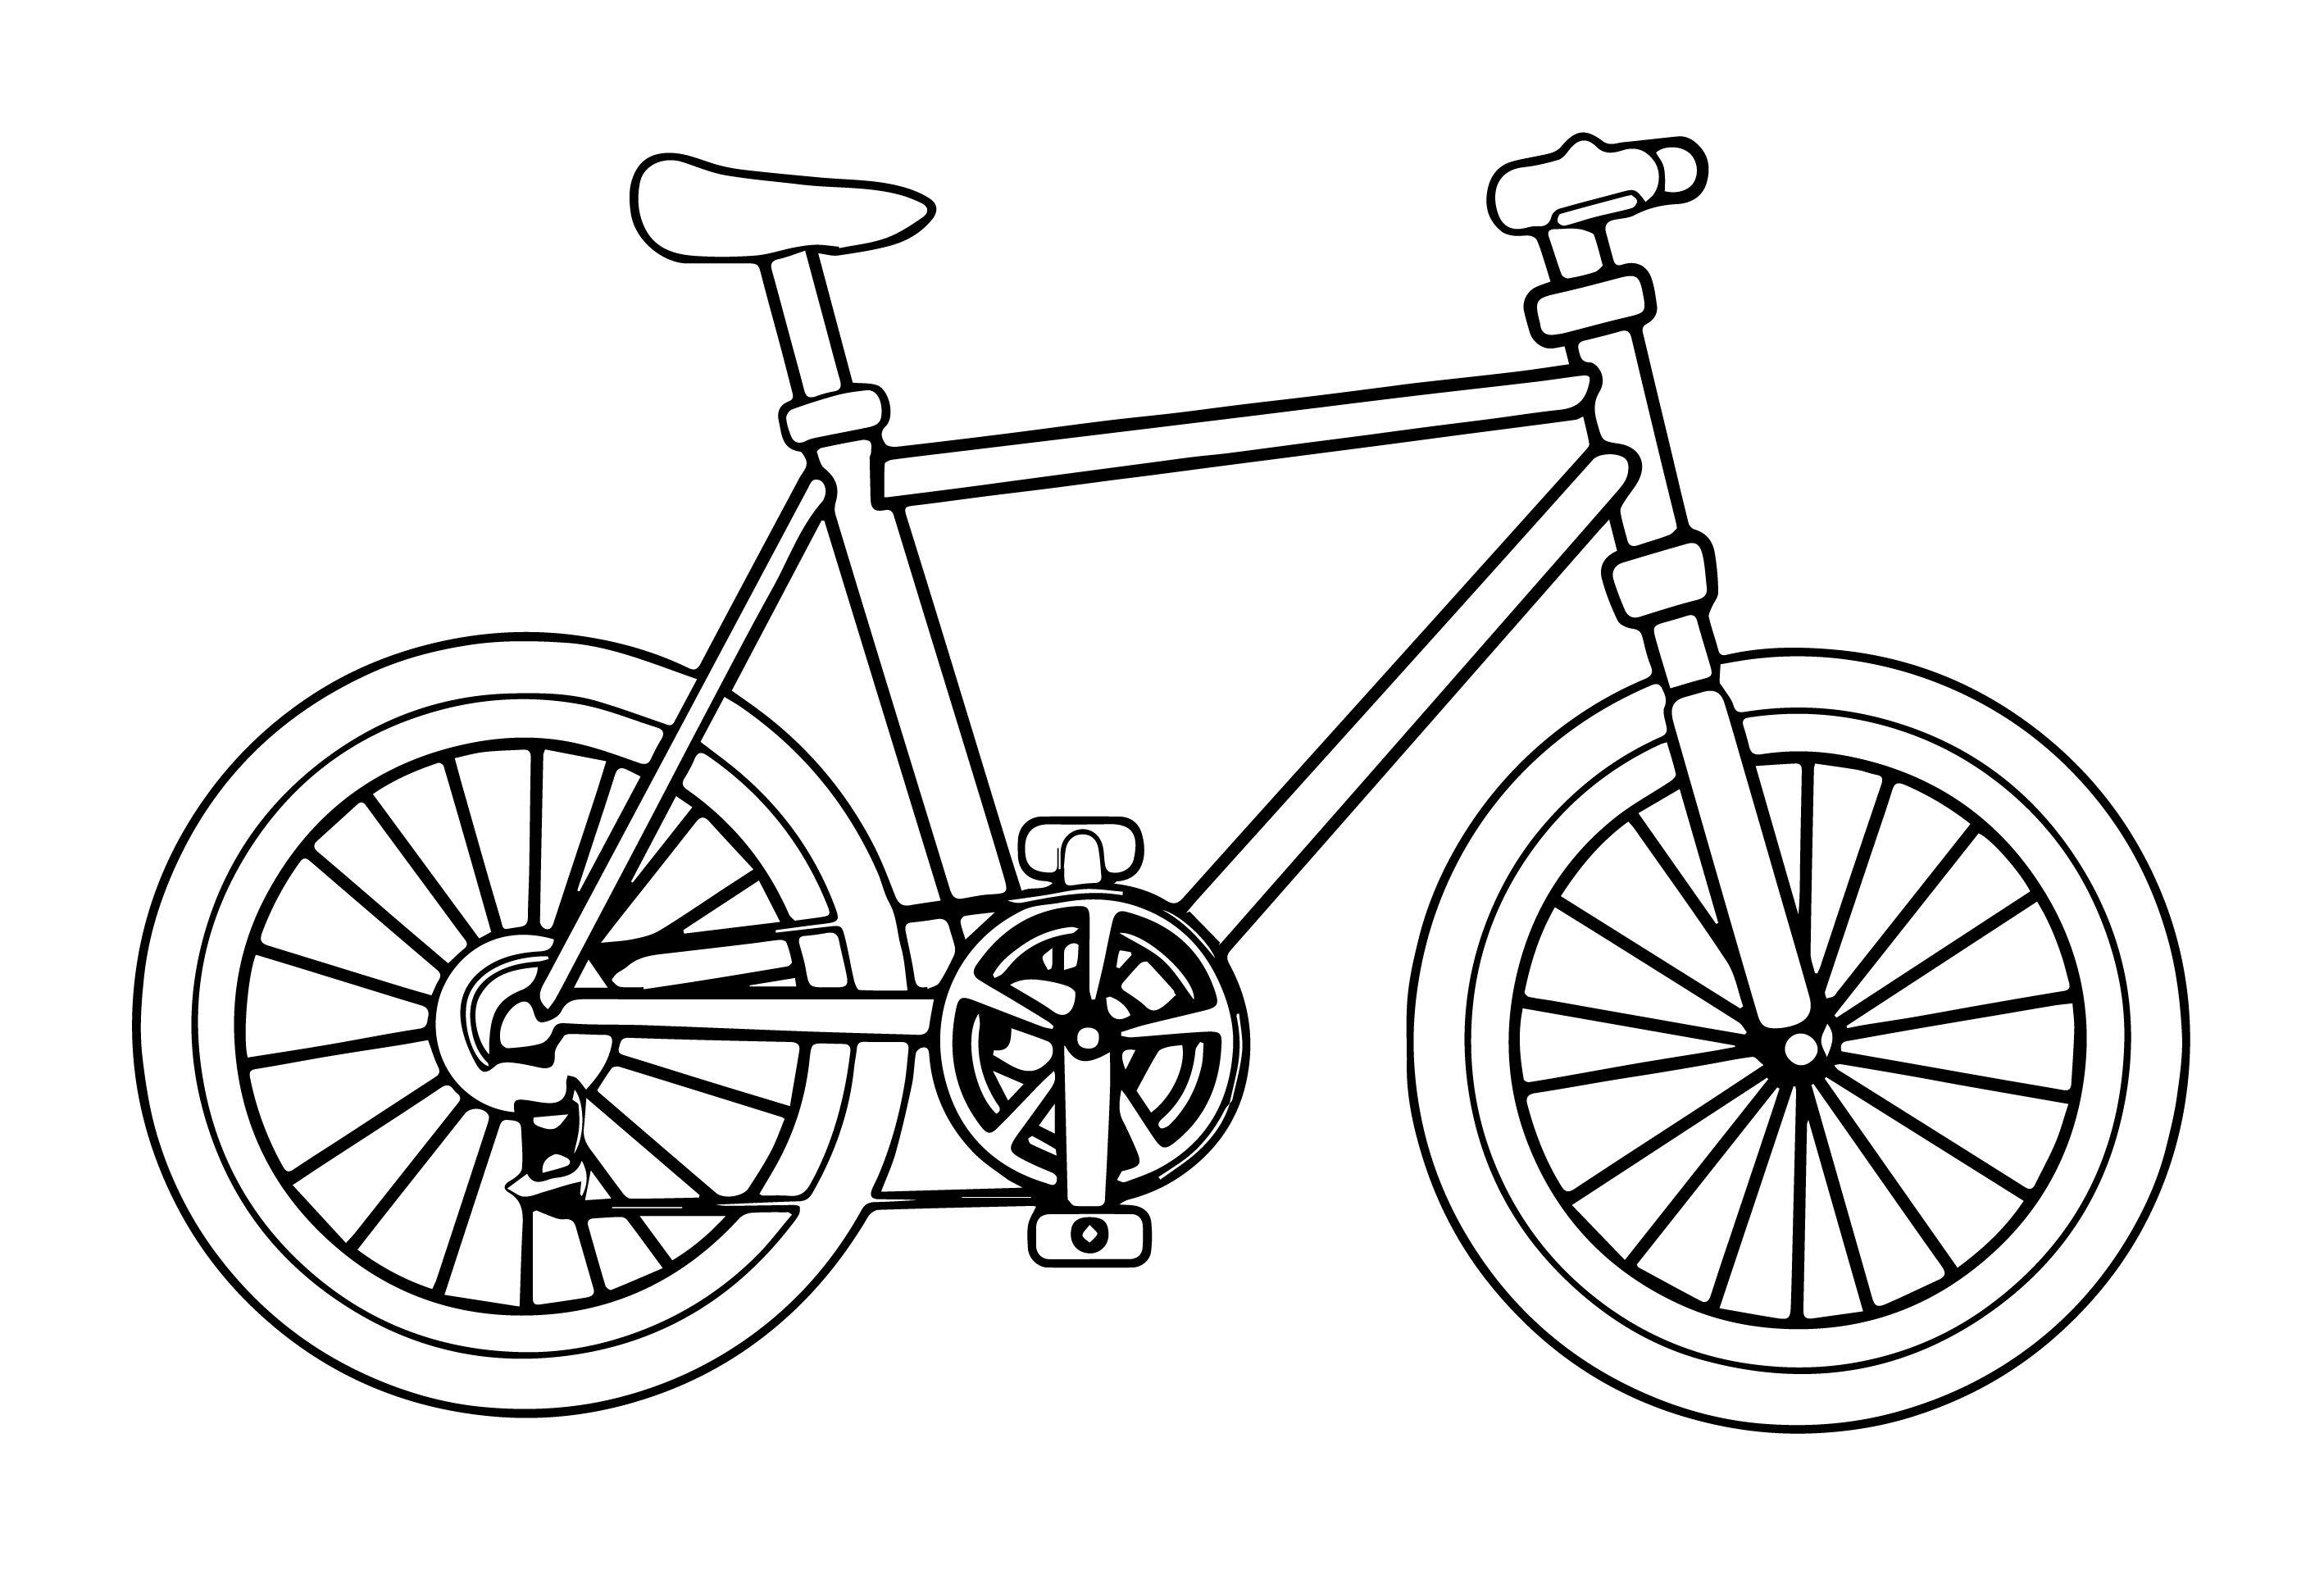 Bicycle image coloring page